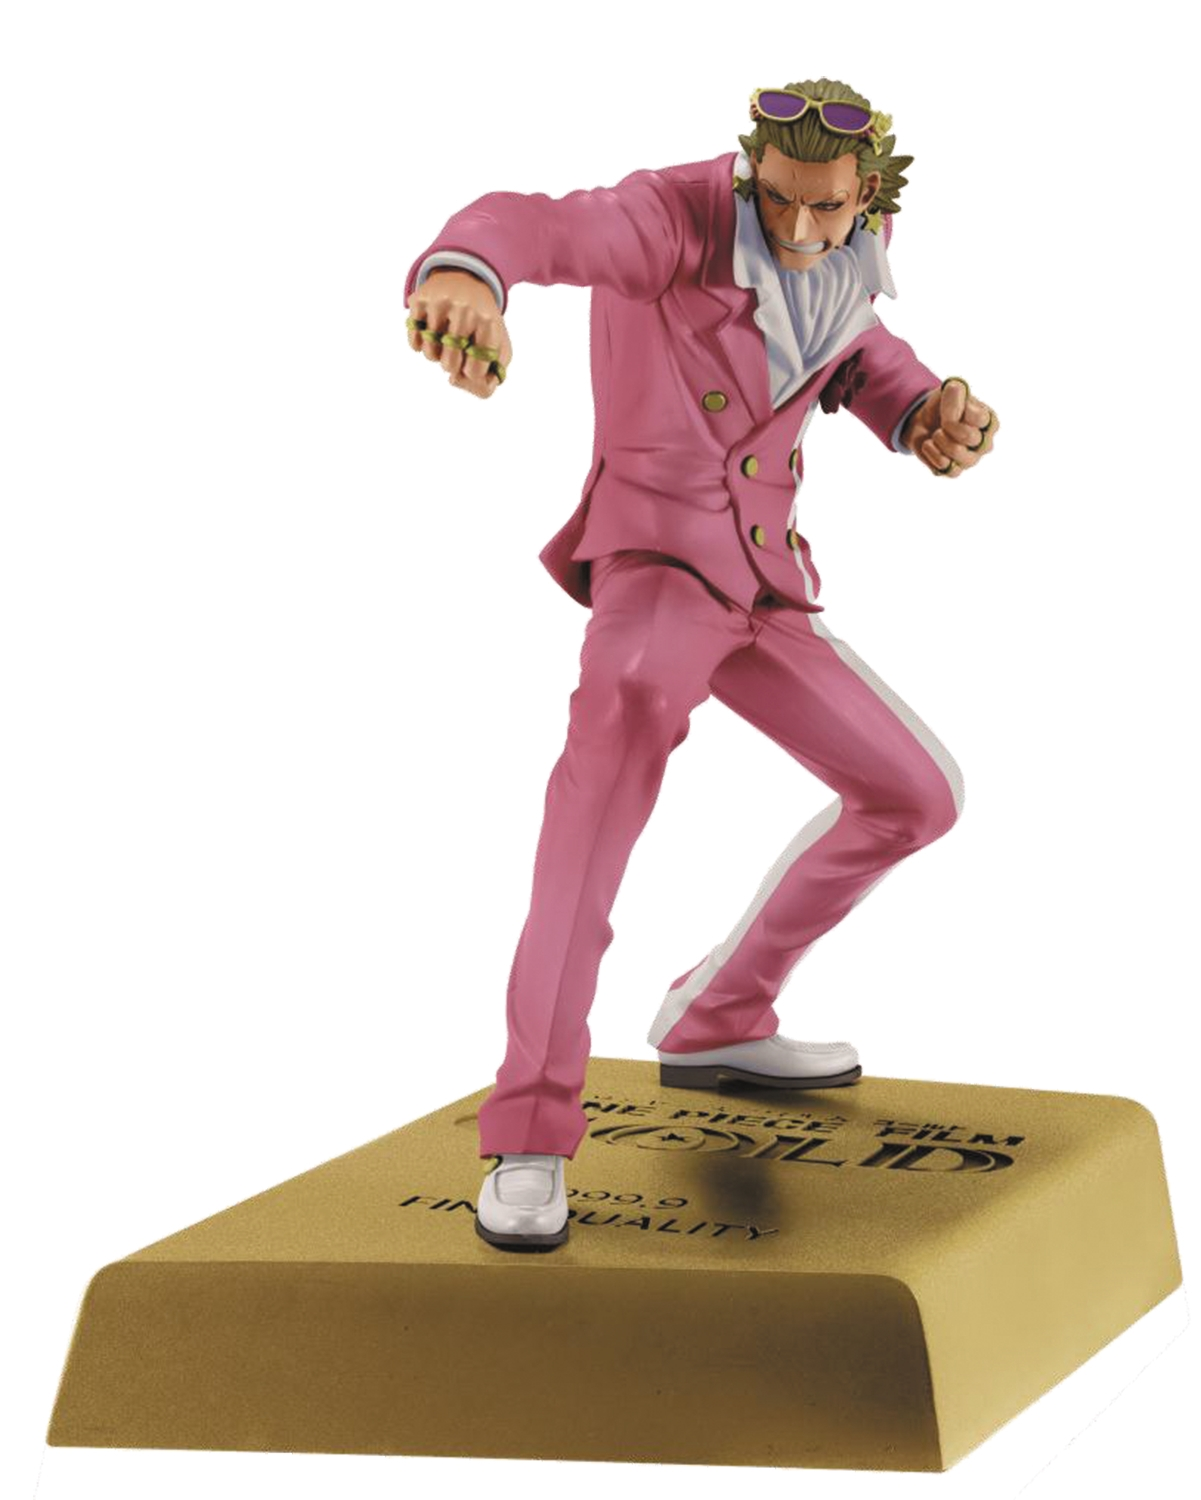 One Piece Film Gold: Gild Tesoro (DXF Manhood 2)